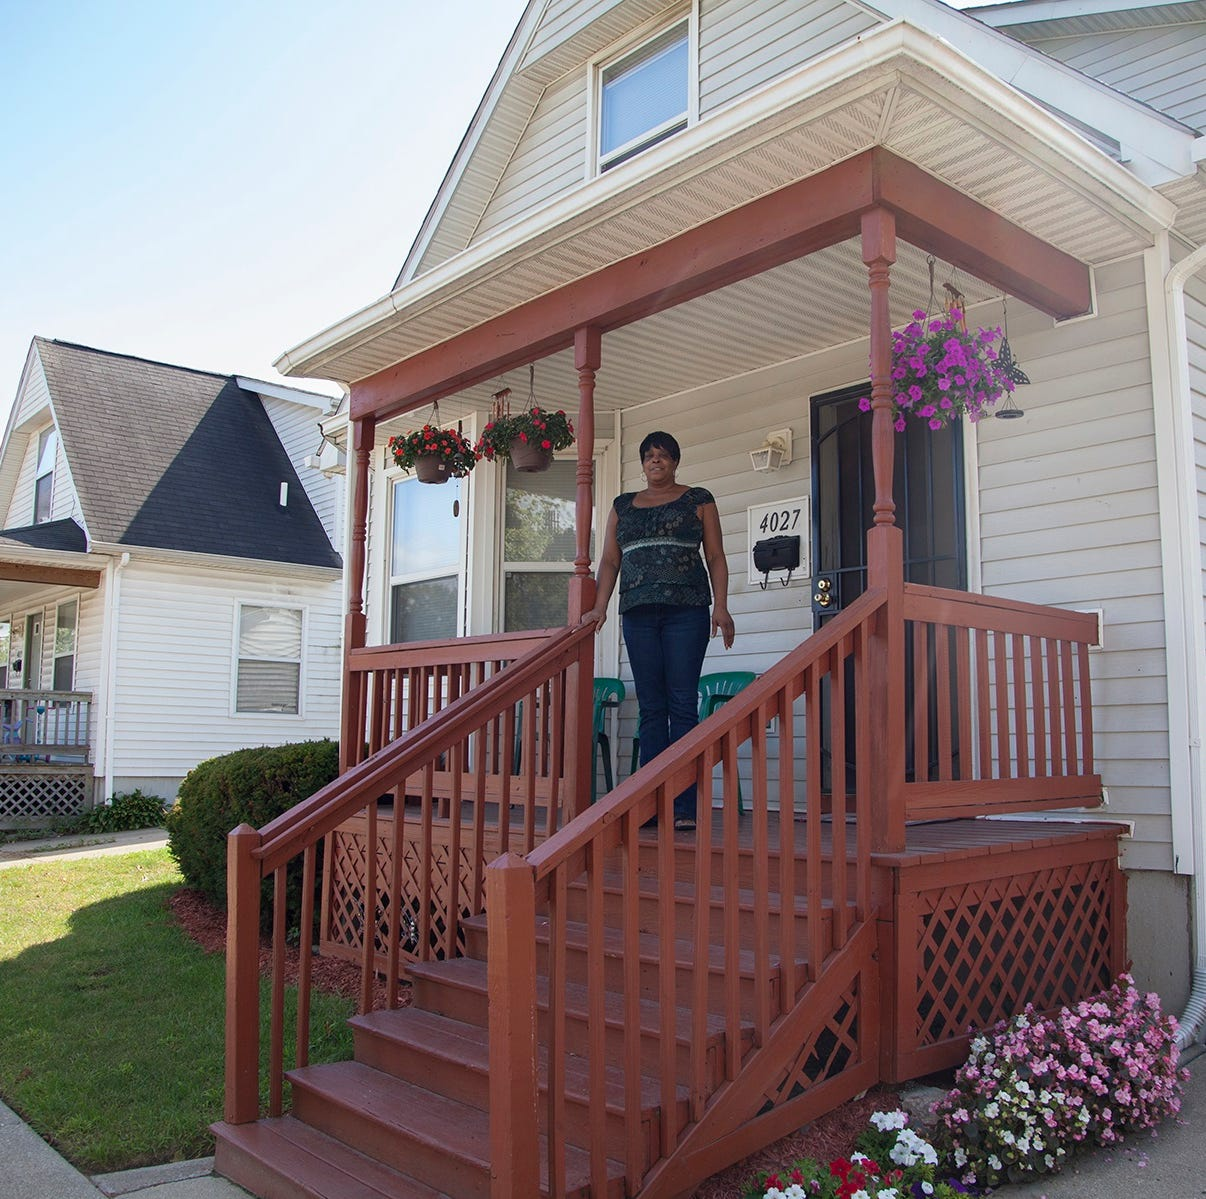 Southwest Detroit program aims to turn renters into homeowners